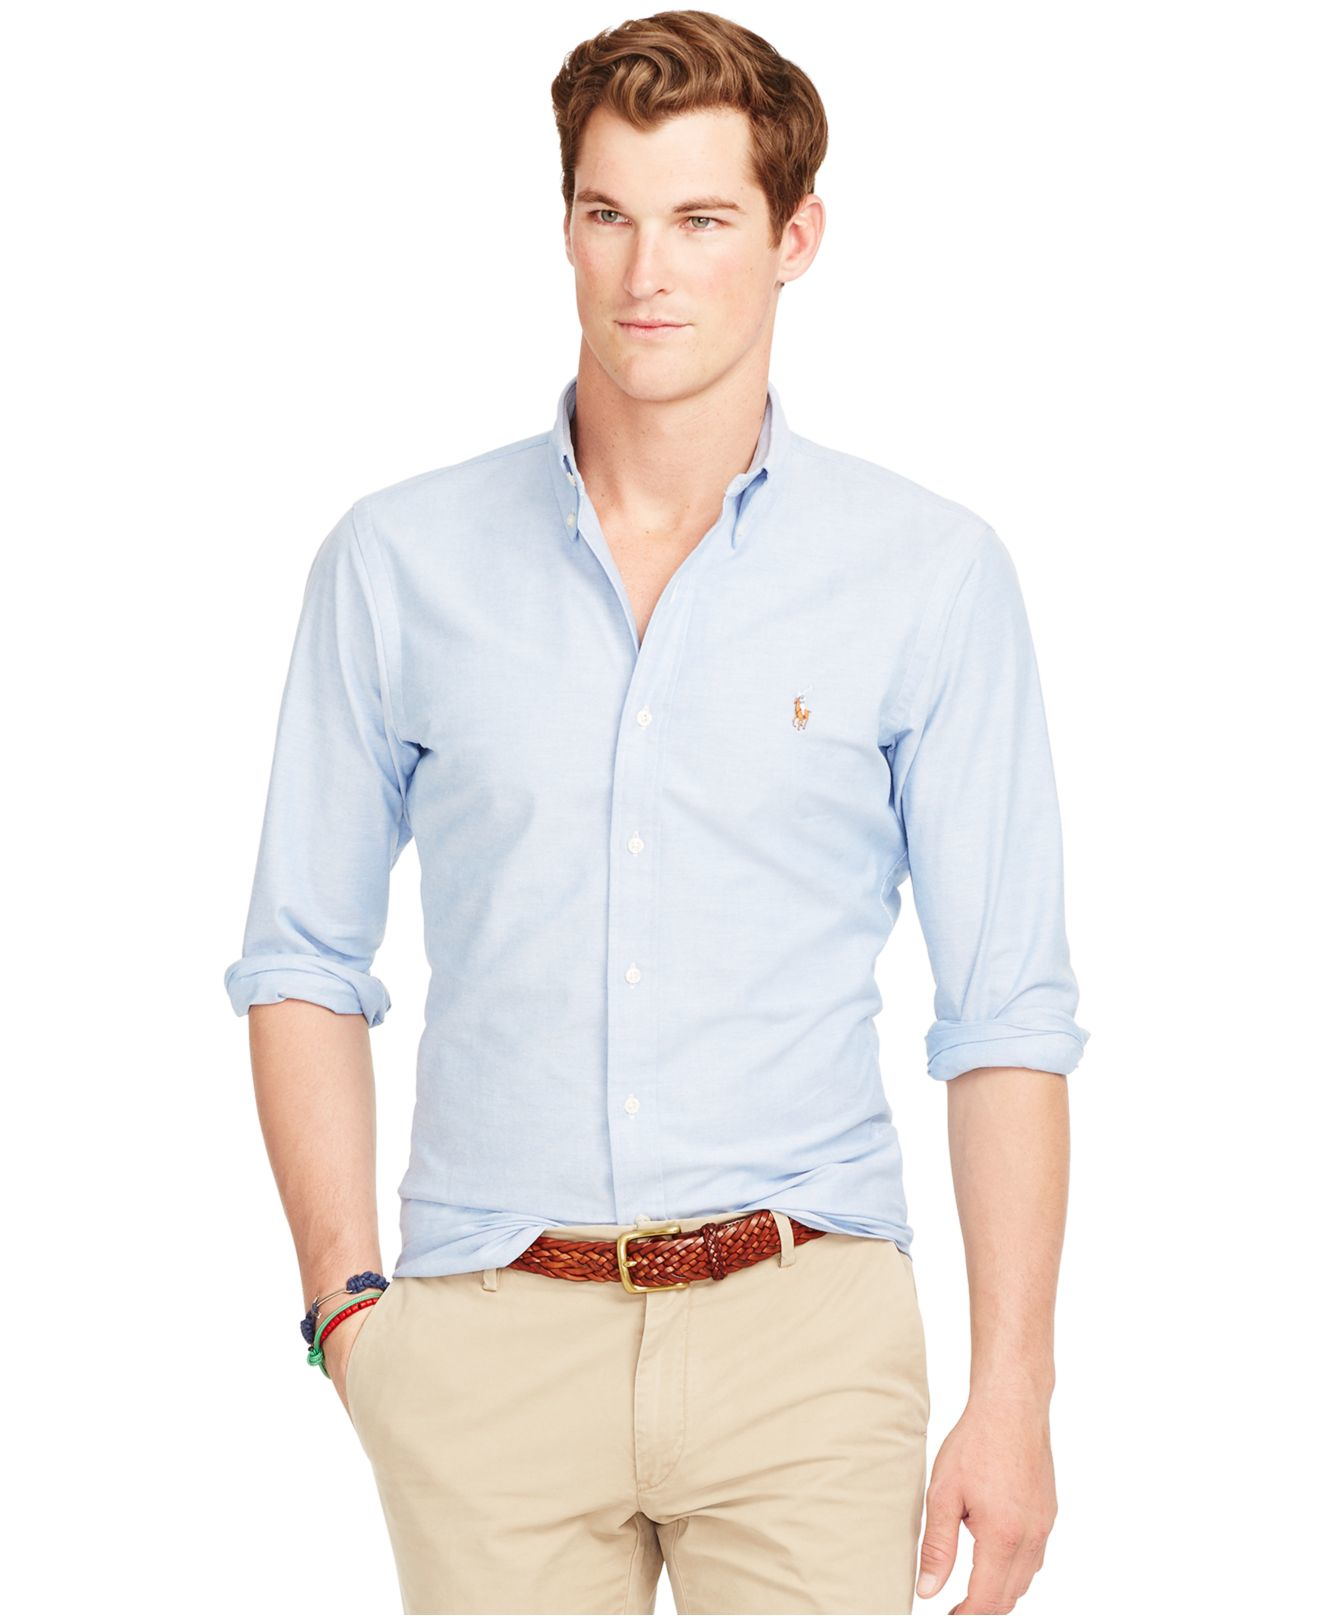 39d10a2c6 Polo Ralph Lauren Slim-fit Stretch-oxford Shirt in Blue for Men - Lyst